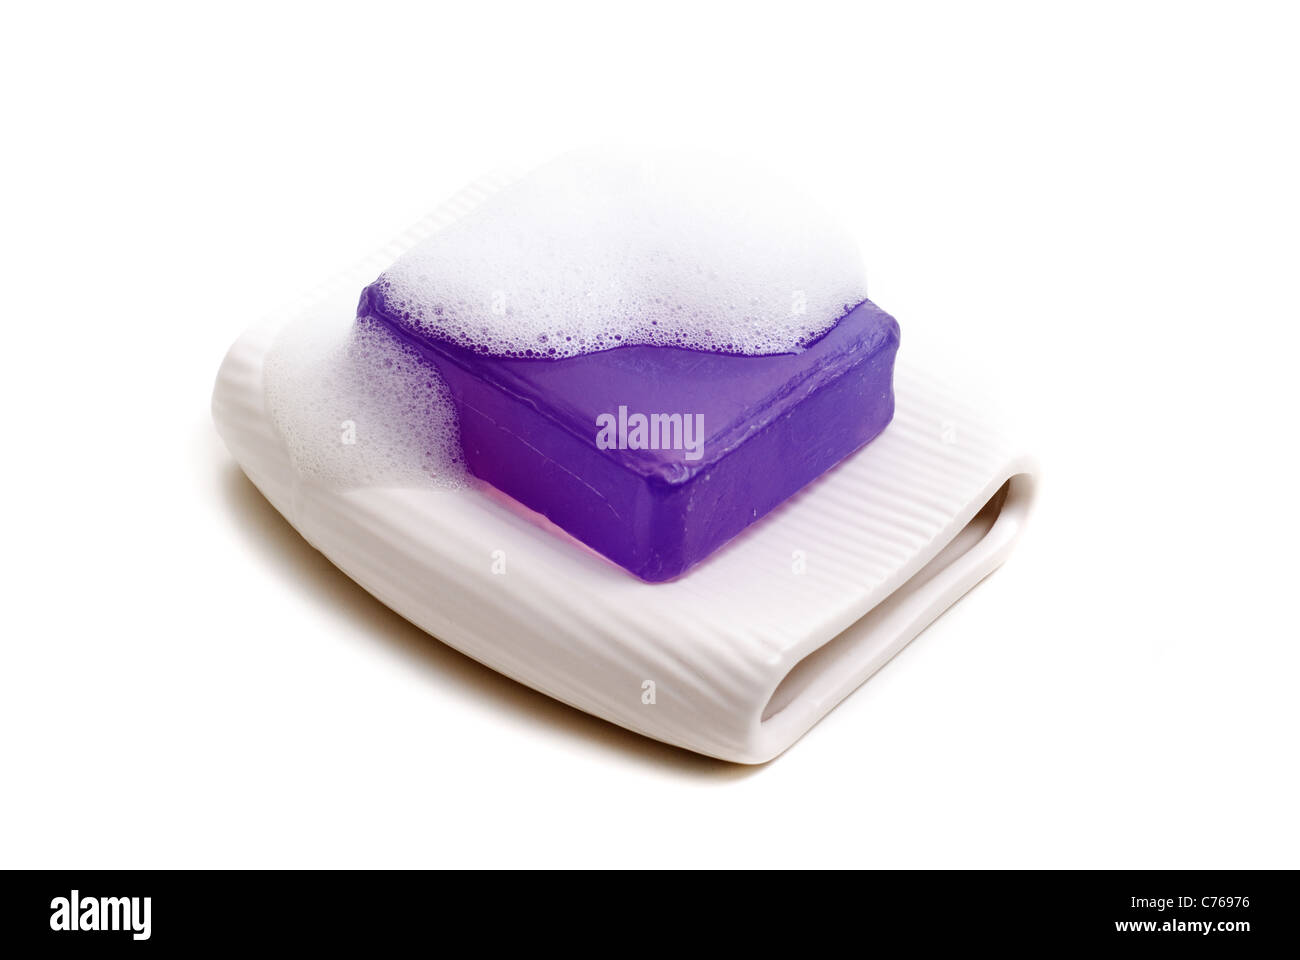 Bar of soap with soap bubbles. - Stock Image